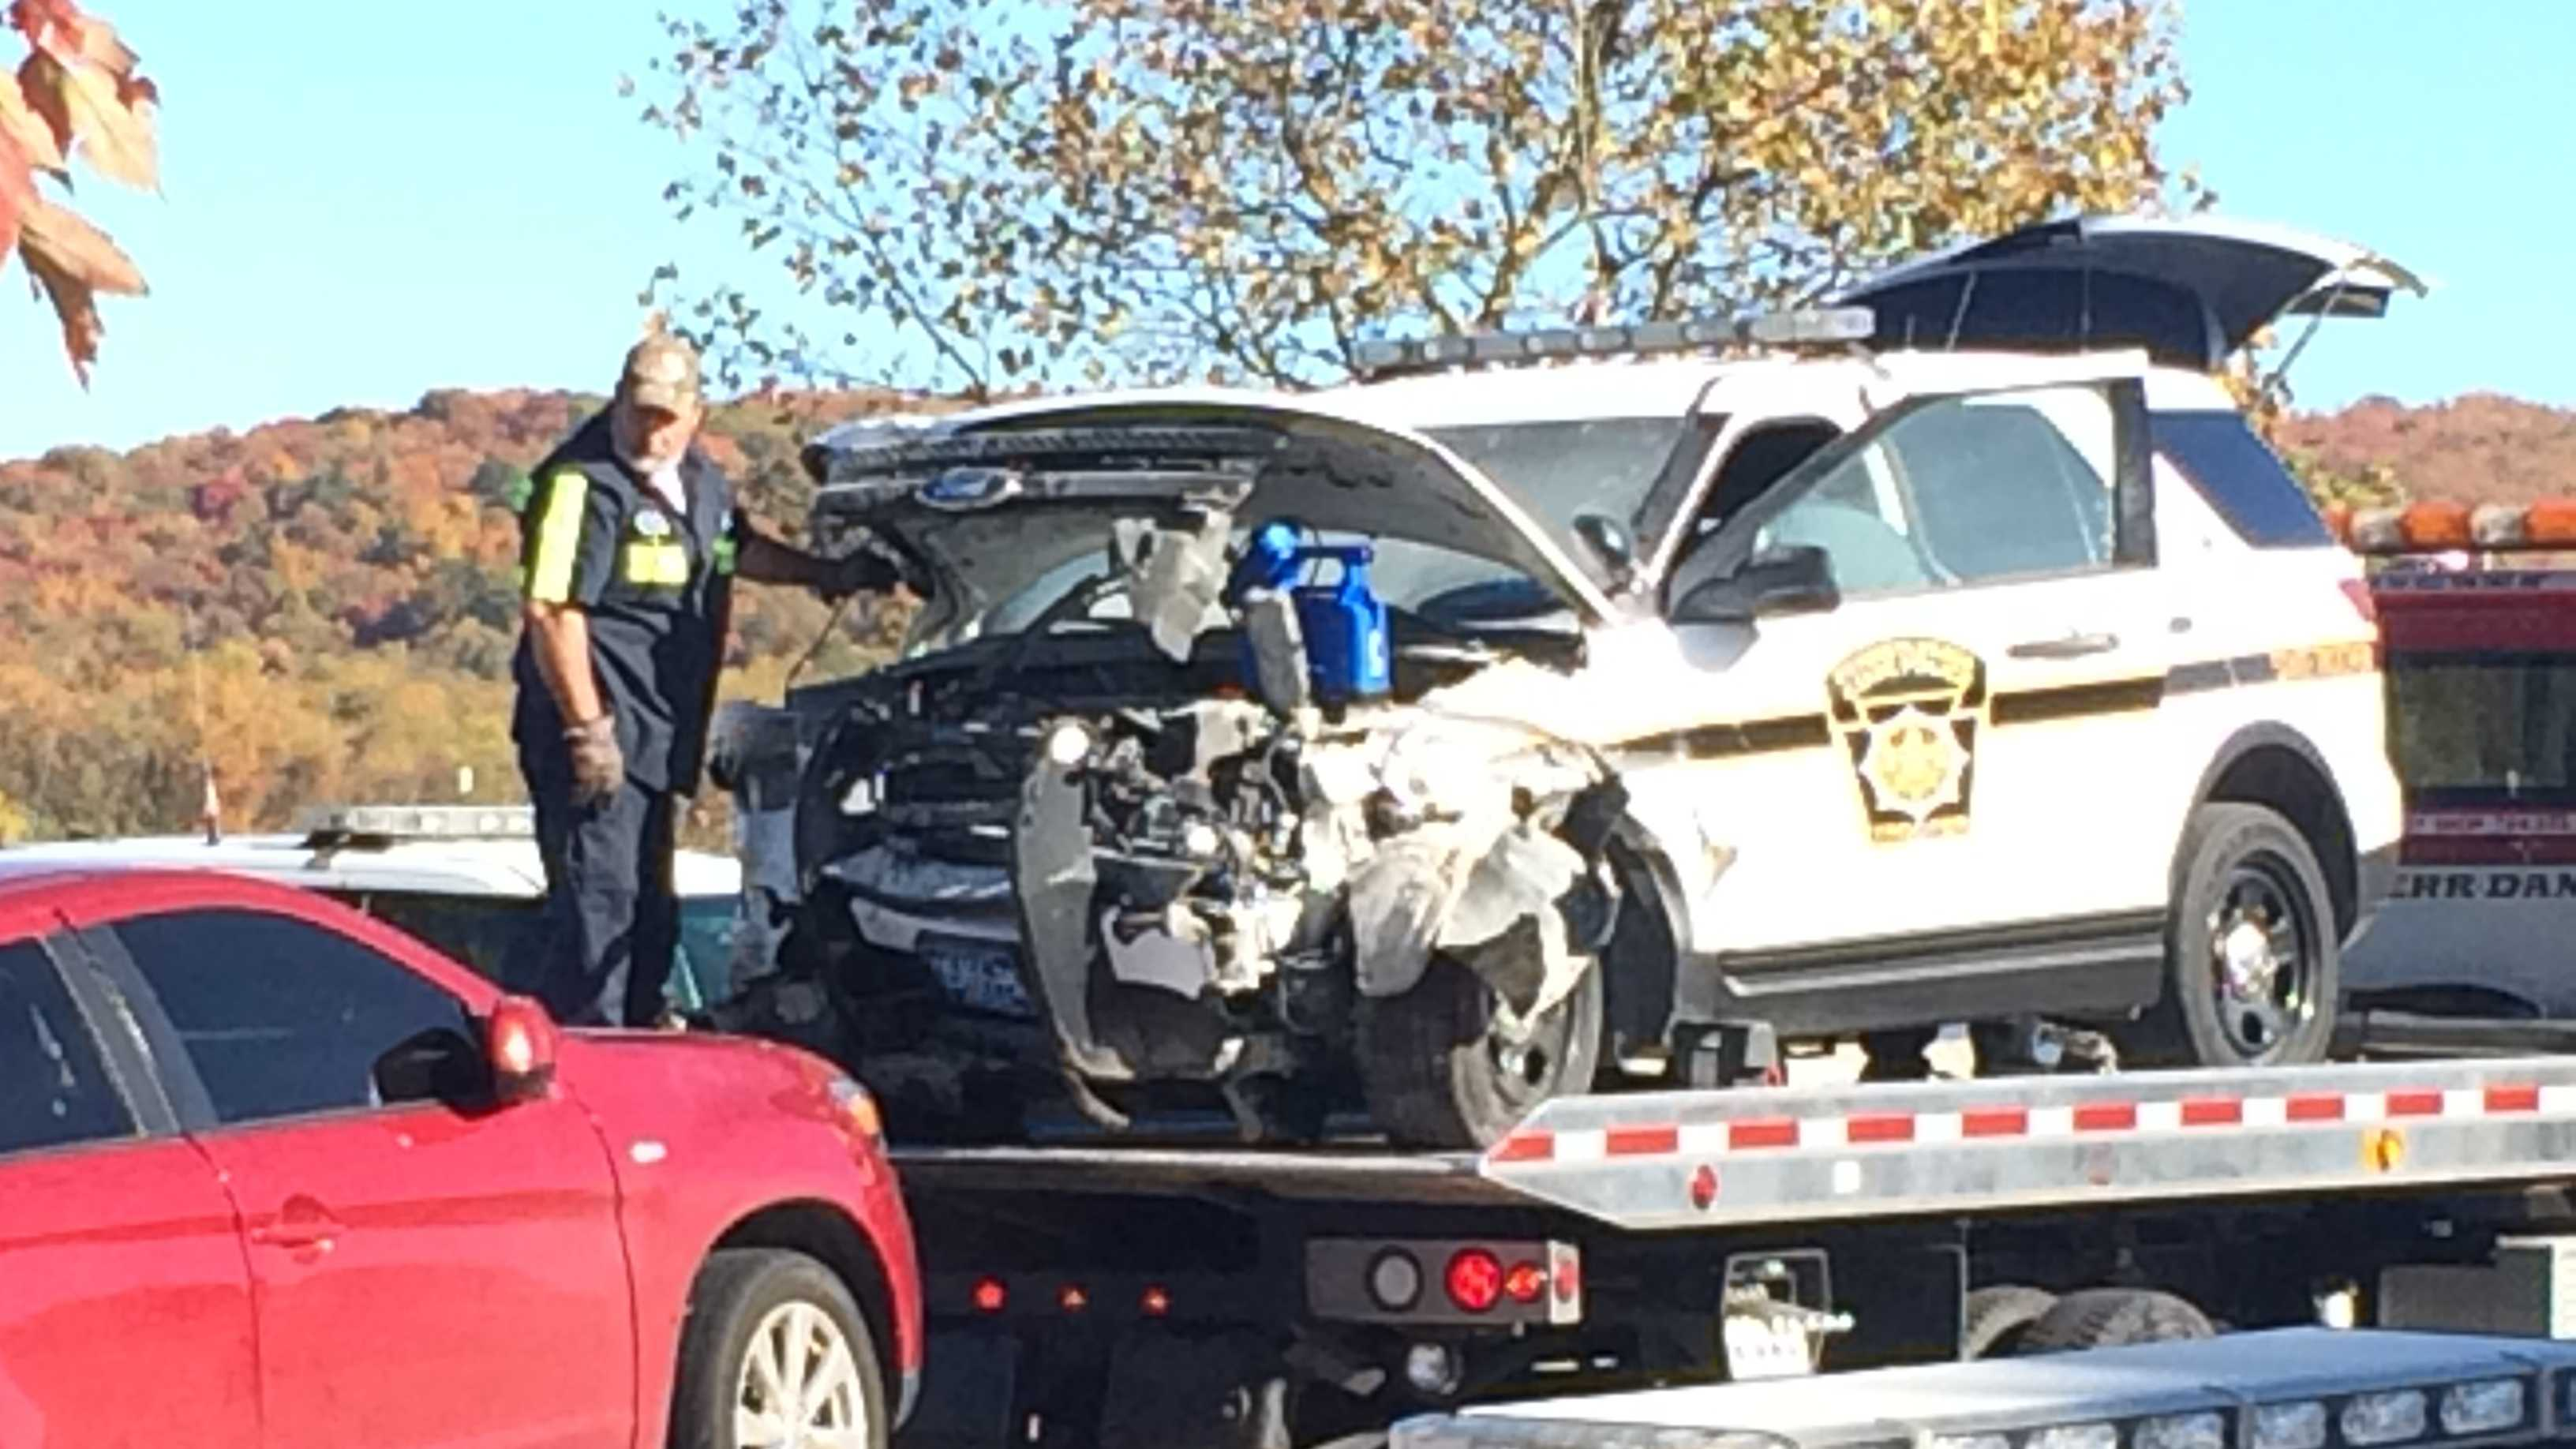 A police pursuit ended in a crash Friday afternoon in North Union Township. (Andy Cunningham)